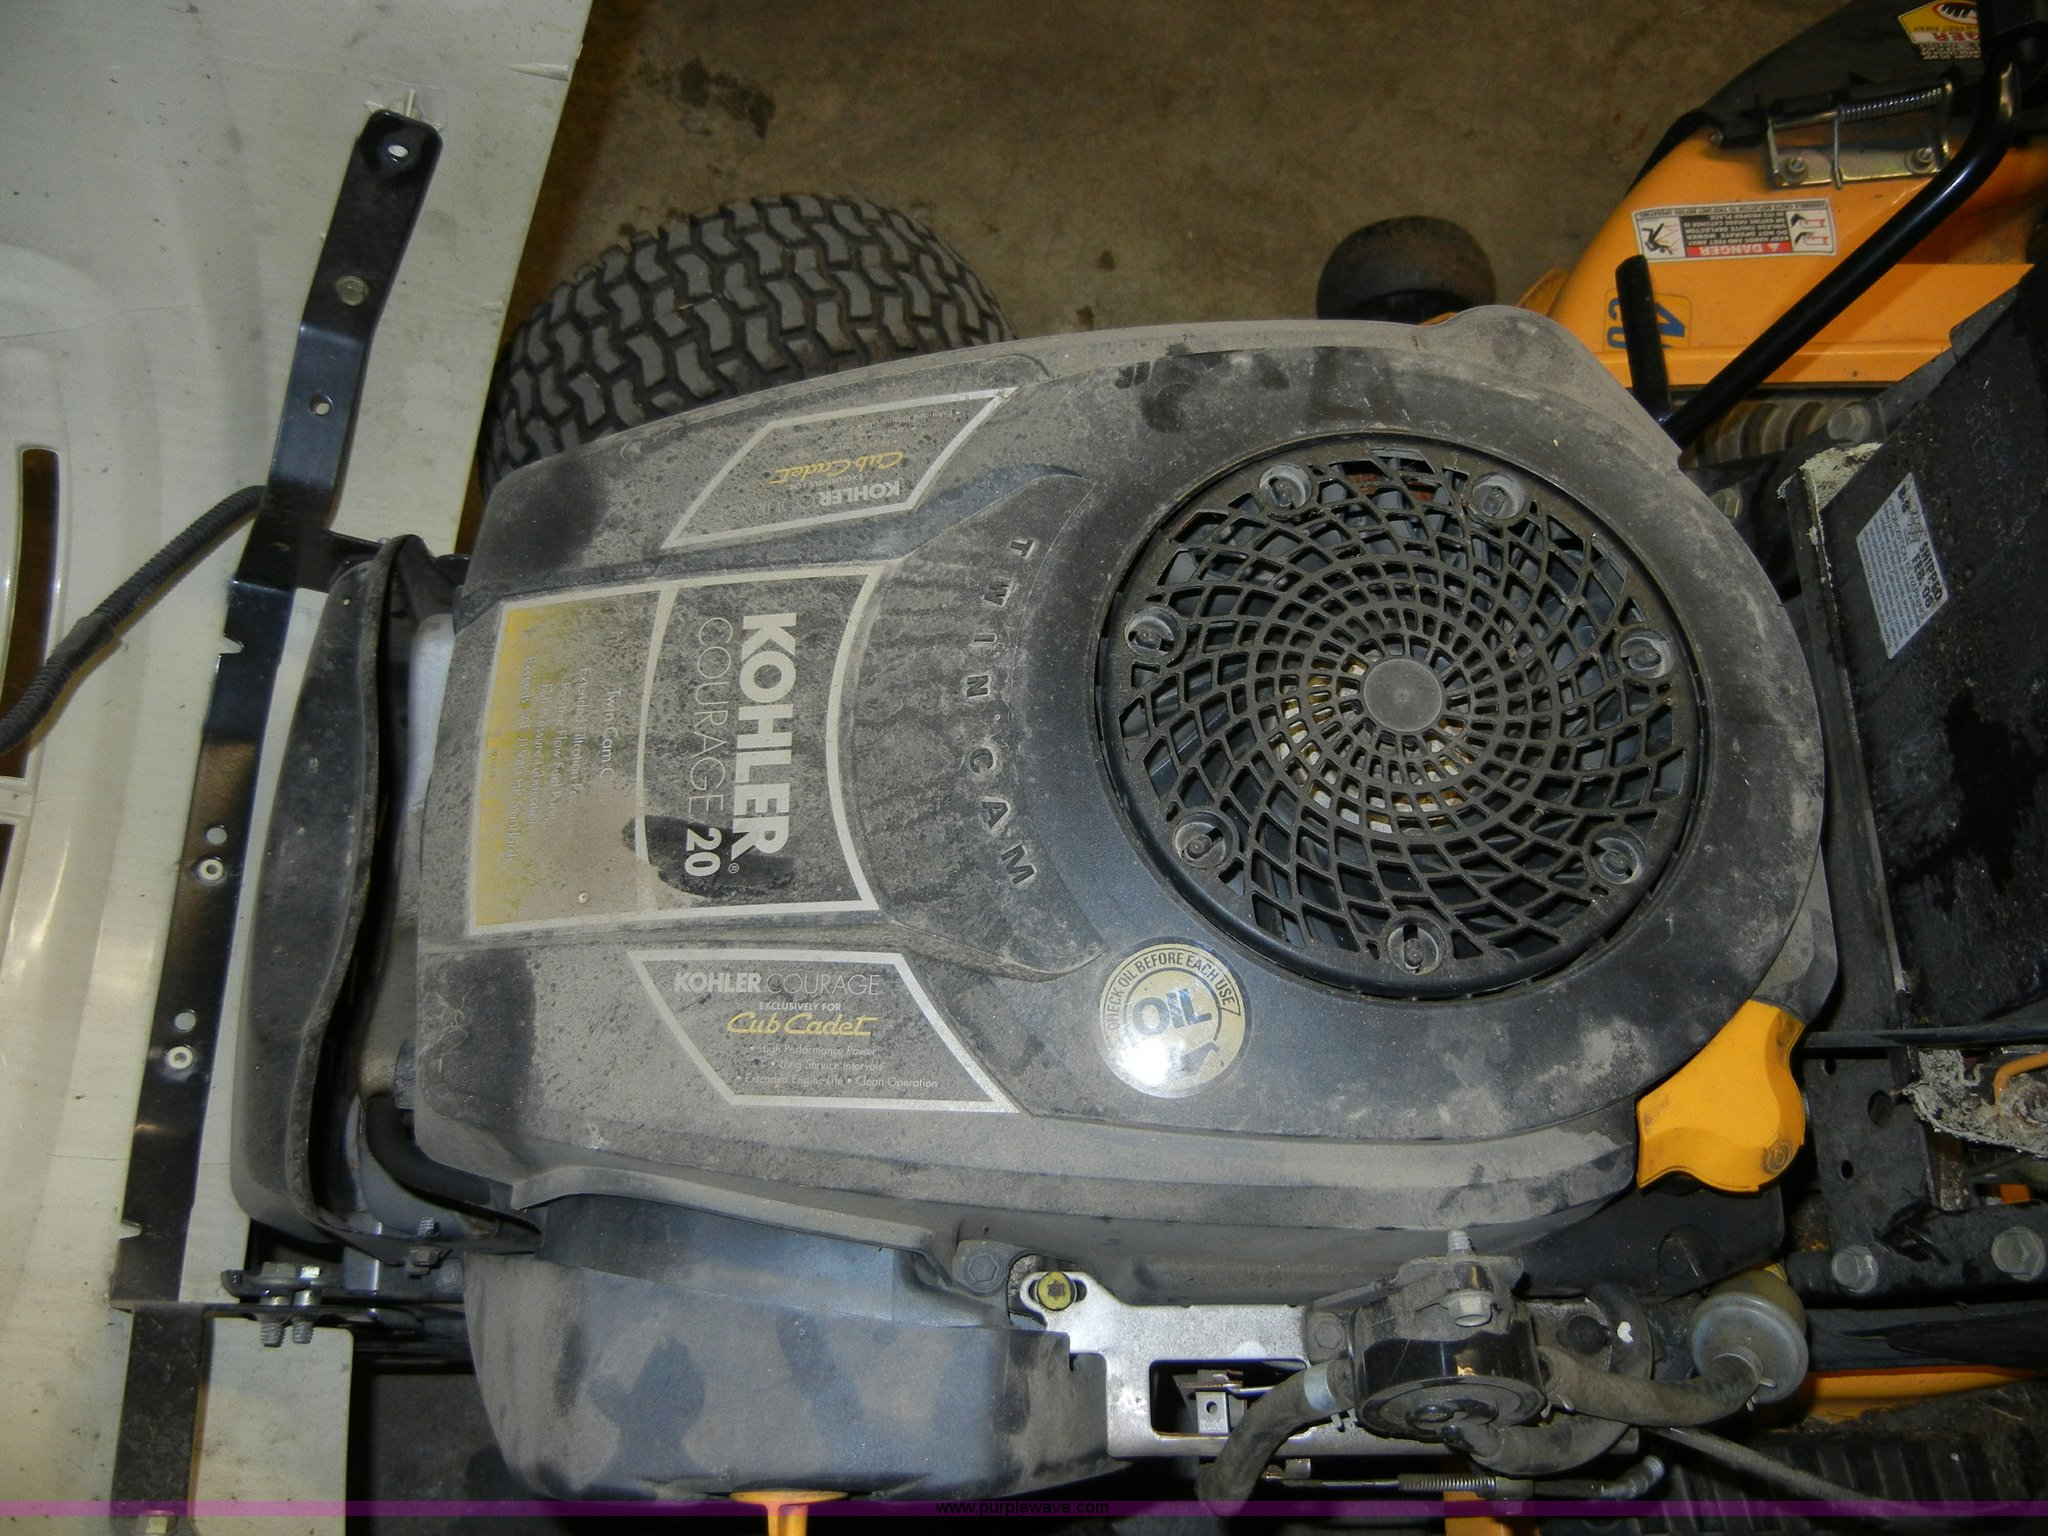 Cub Cadet LT1045 riding mower | Item 2444 | SOLD! KDOR/KHP S